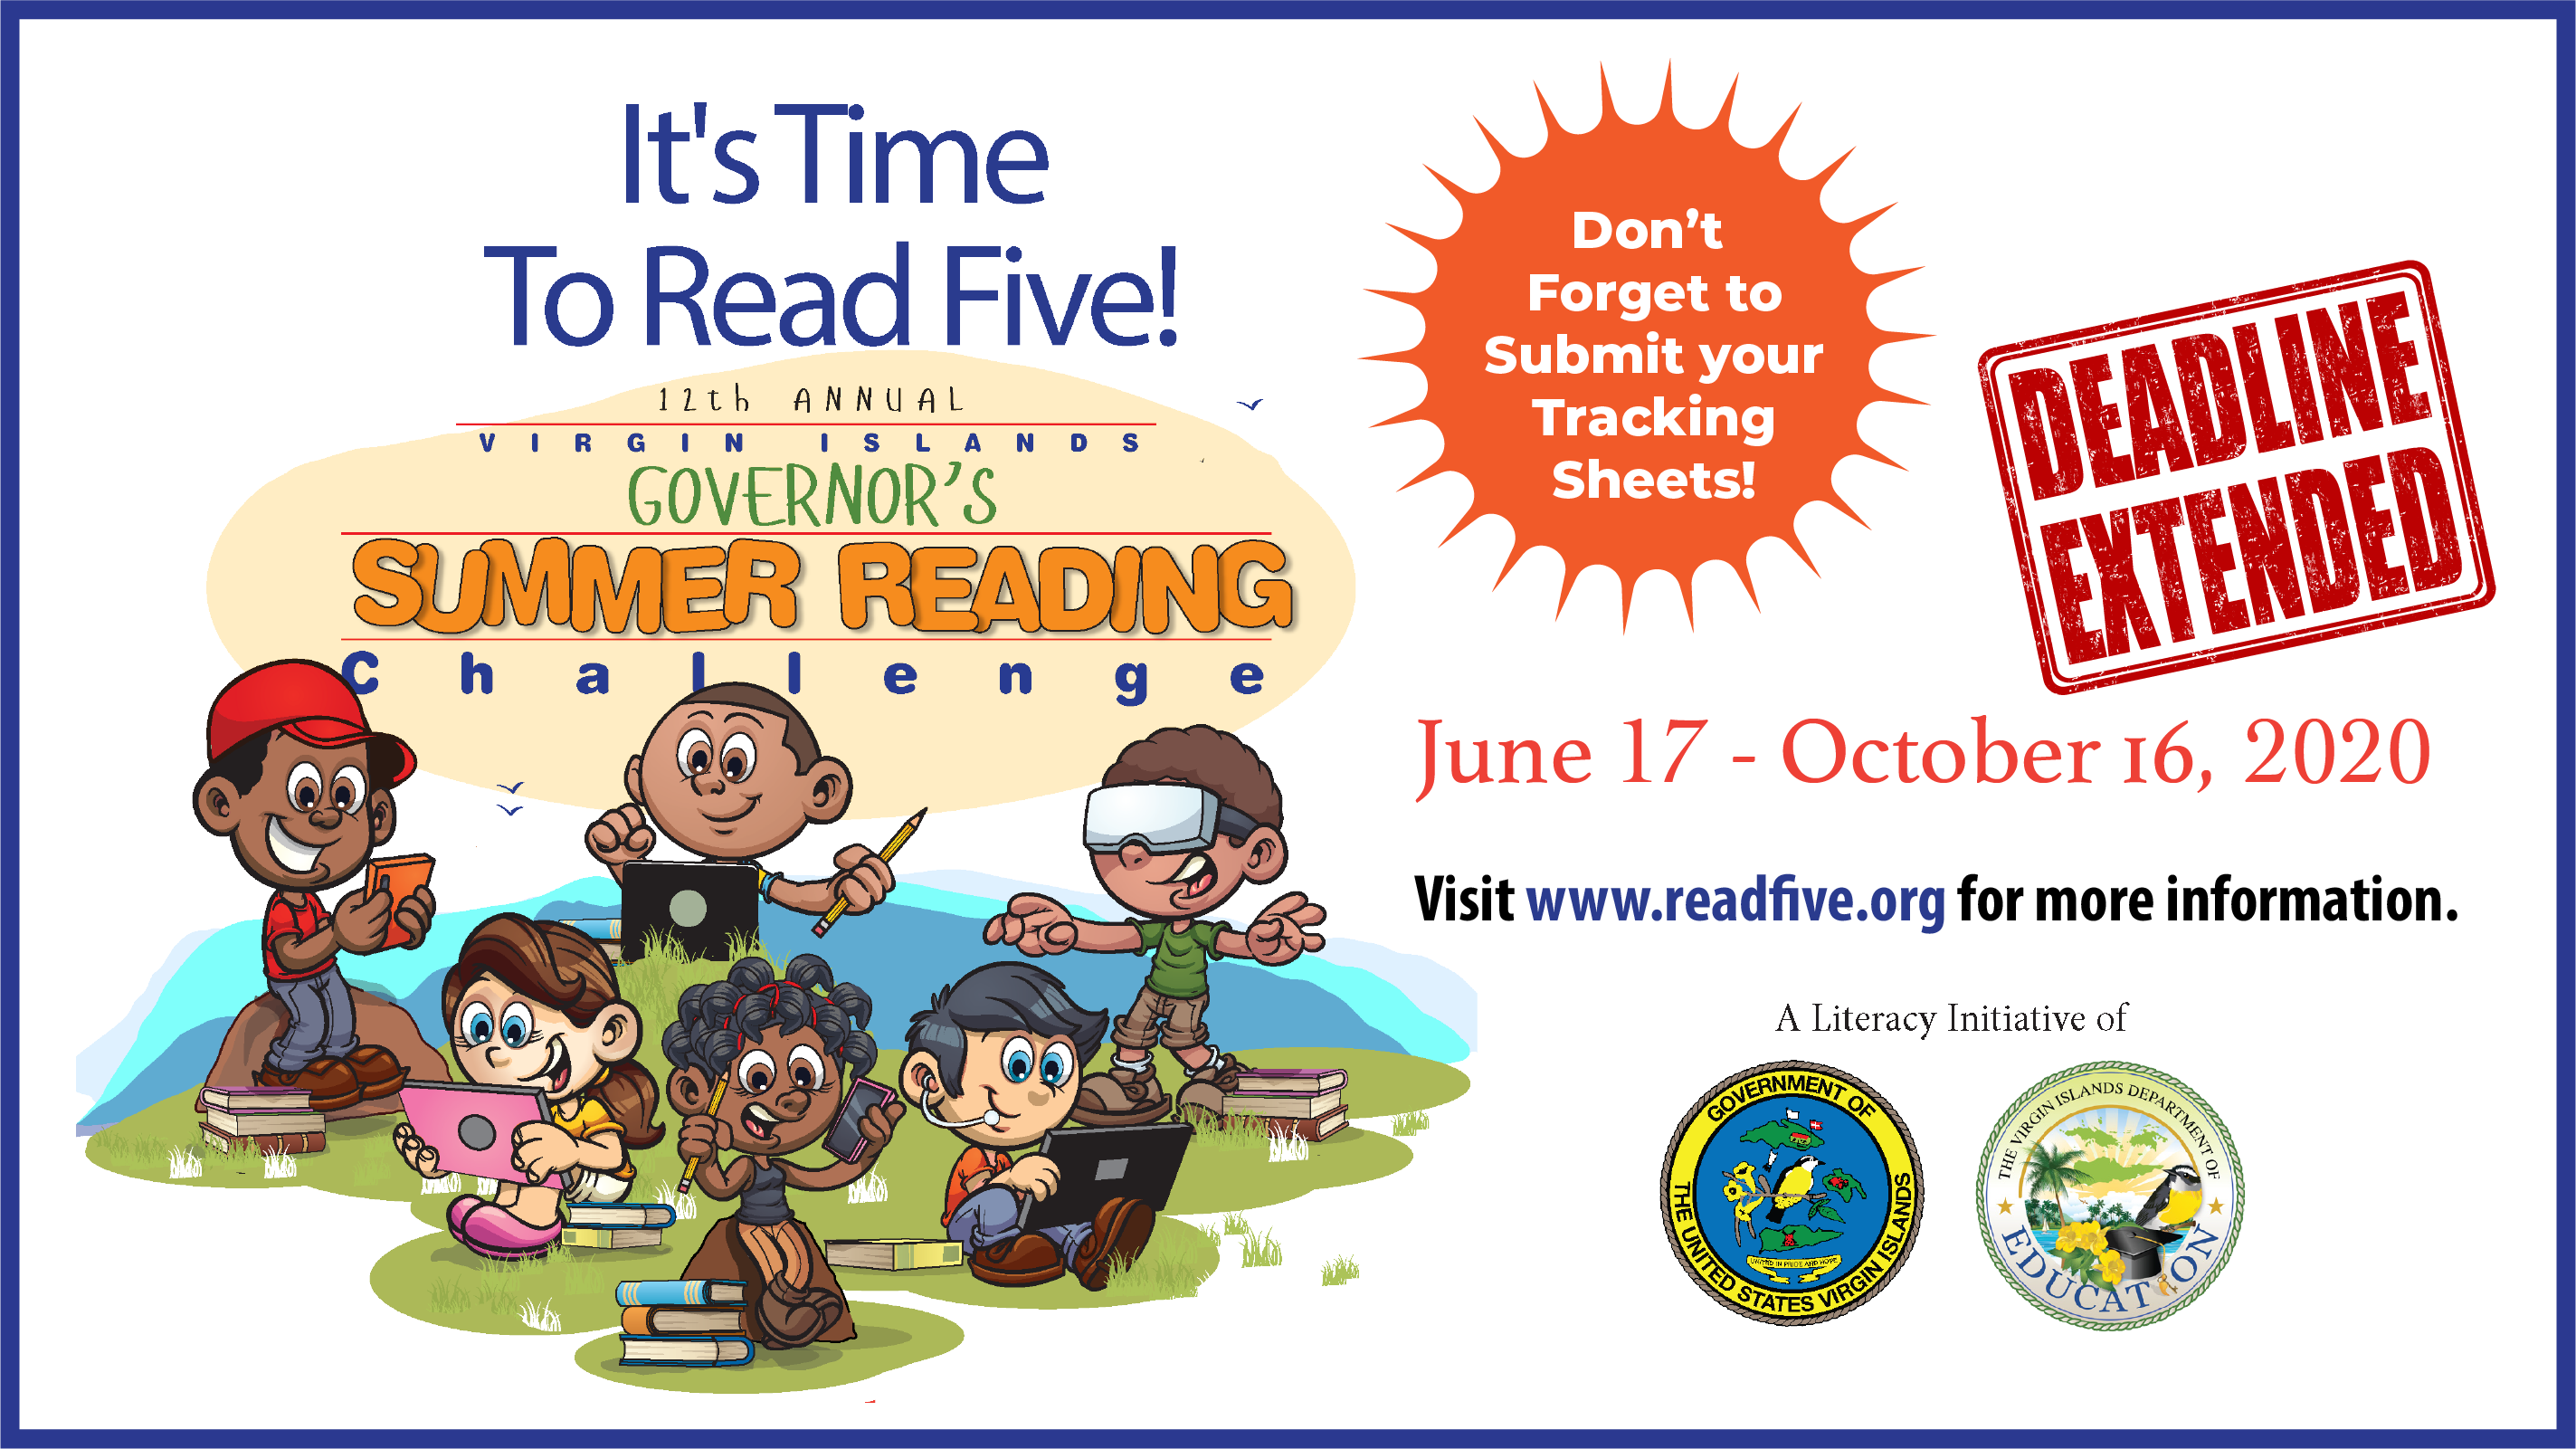 Submit your tracking sheets for the V.I. Governor's Summer Reading Challenge!